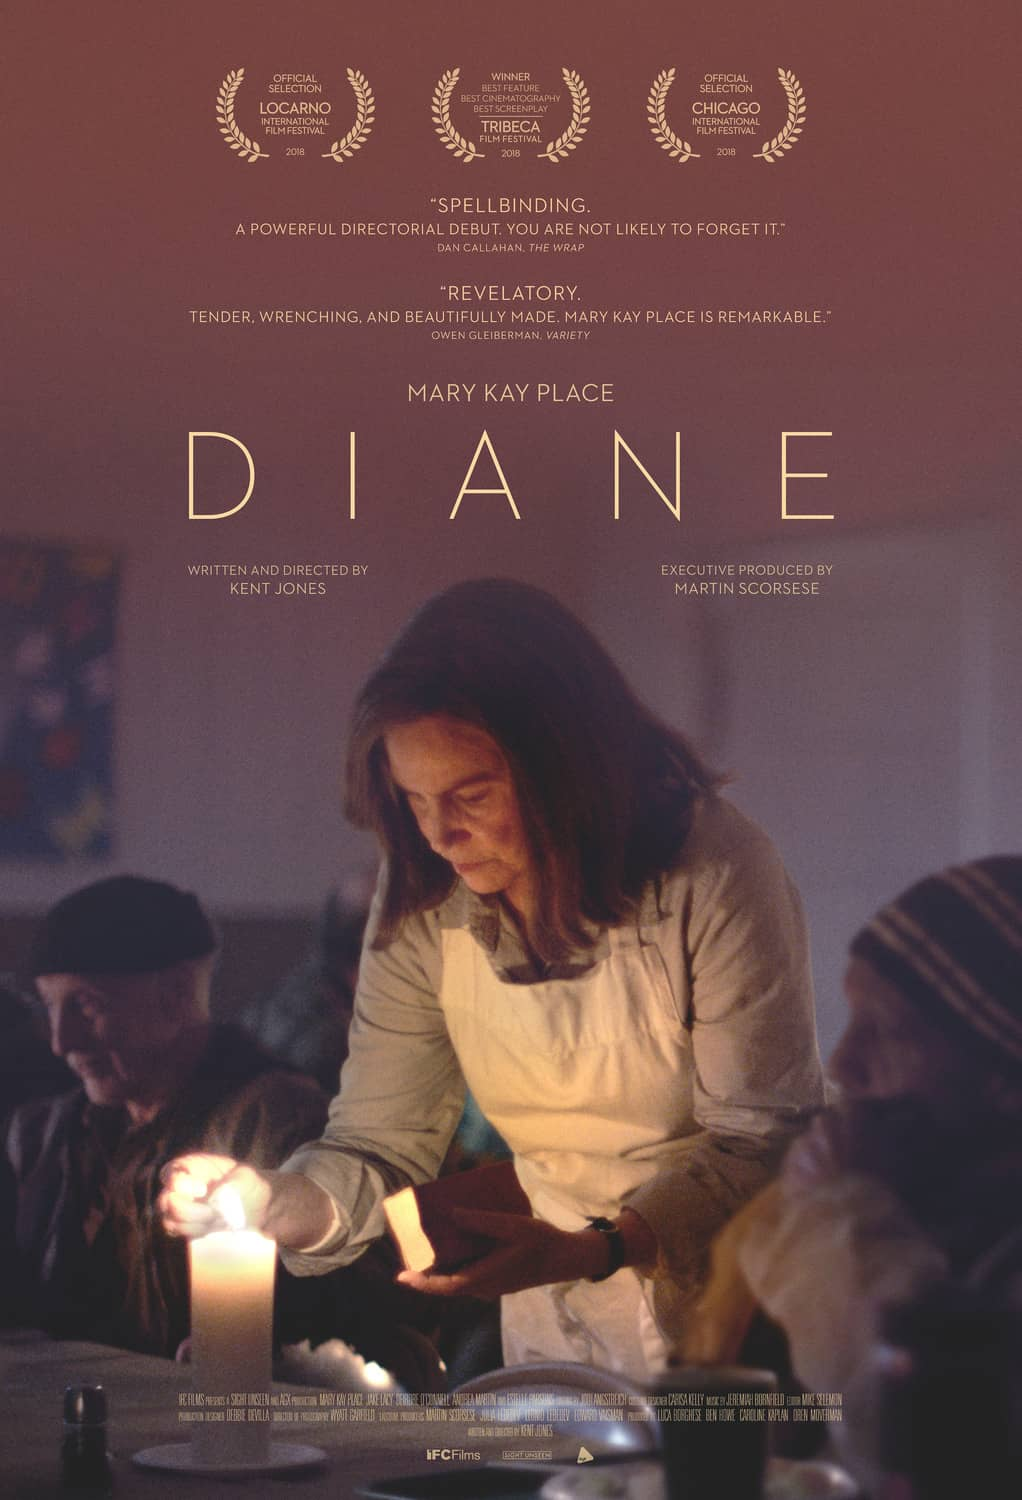 Diane review: Best of 2019 #23 2